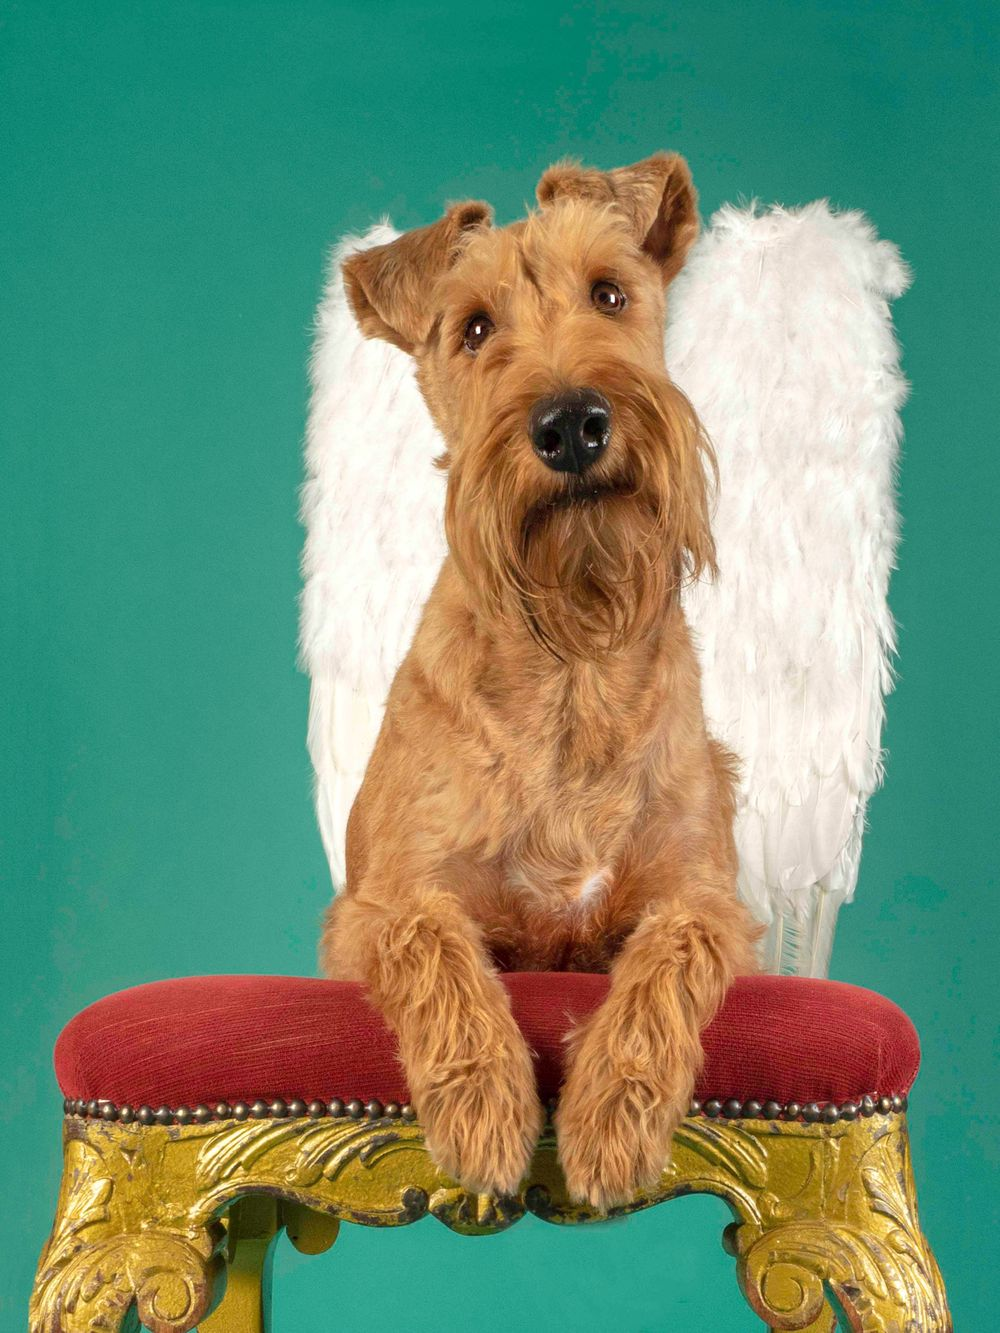 Archie the Irish Terrier is 'Angel Eyes'